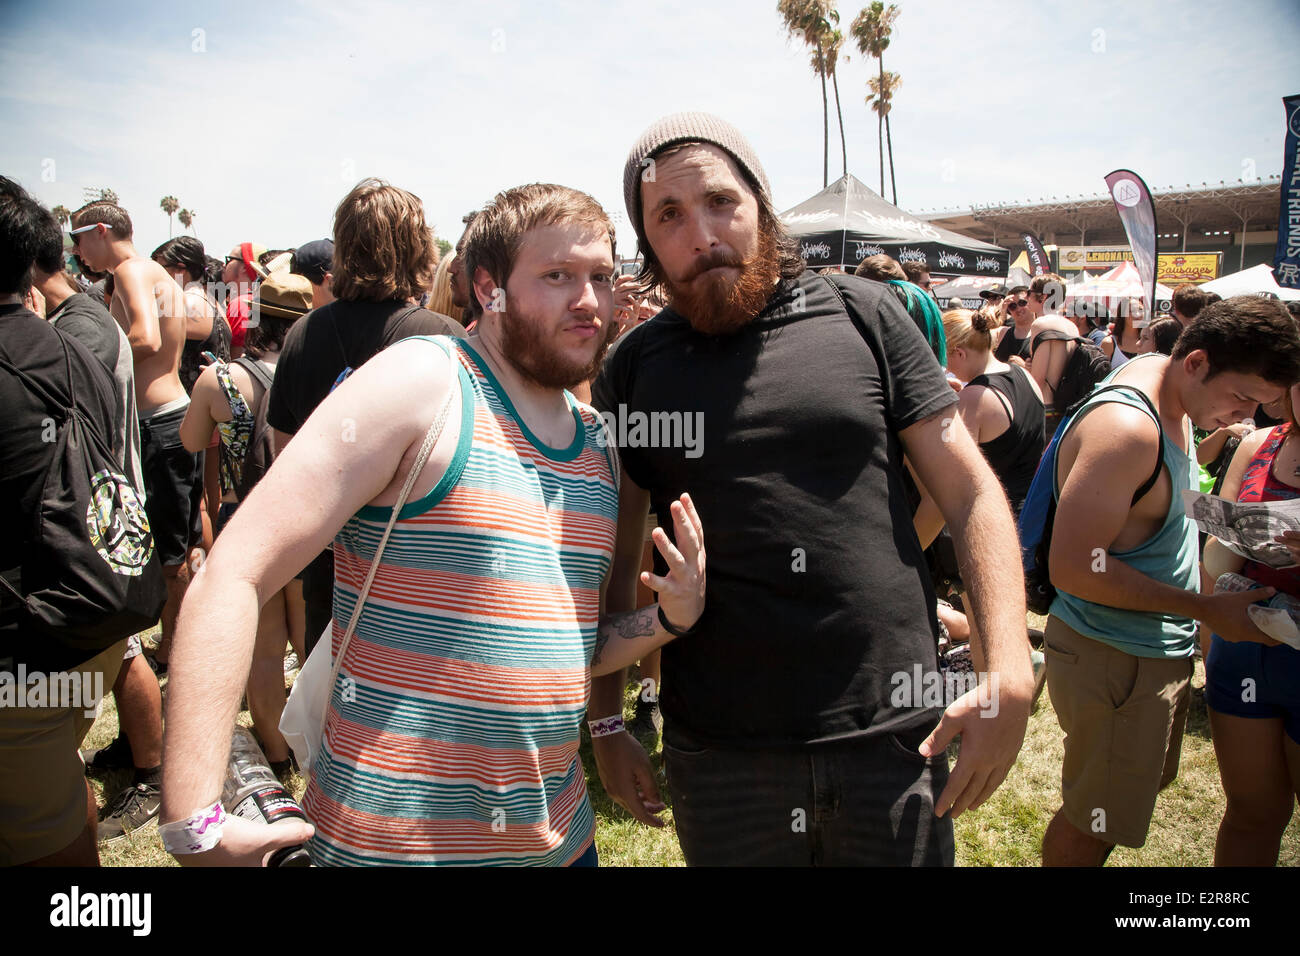 Pomona, CA, USA. 20th June, 2014. The Devil Wears Prada fans at the Vans Warped Tour. Thousands of young alternative - Stock Image